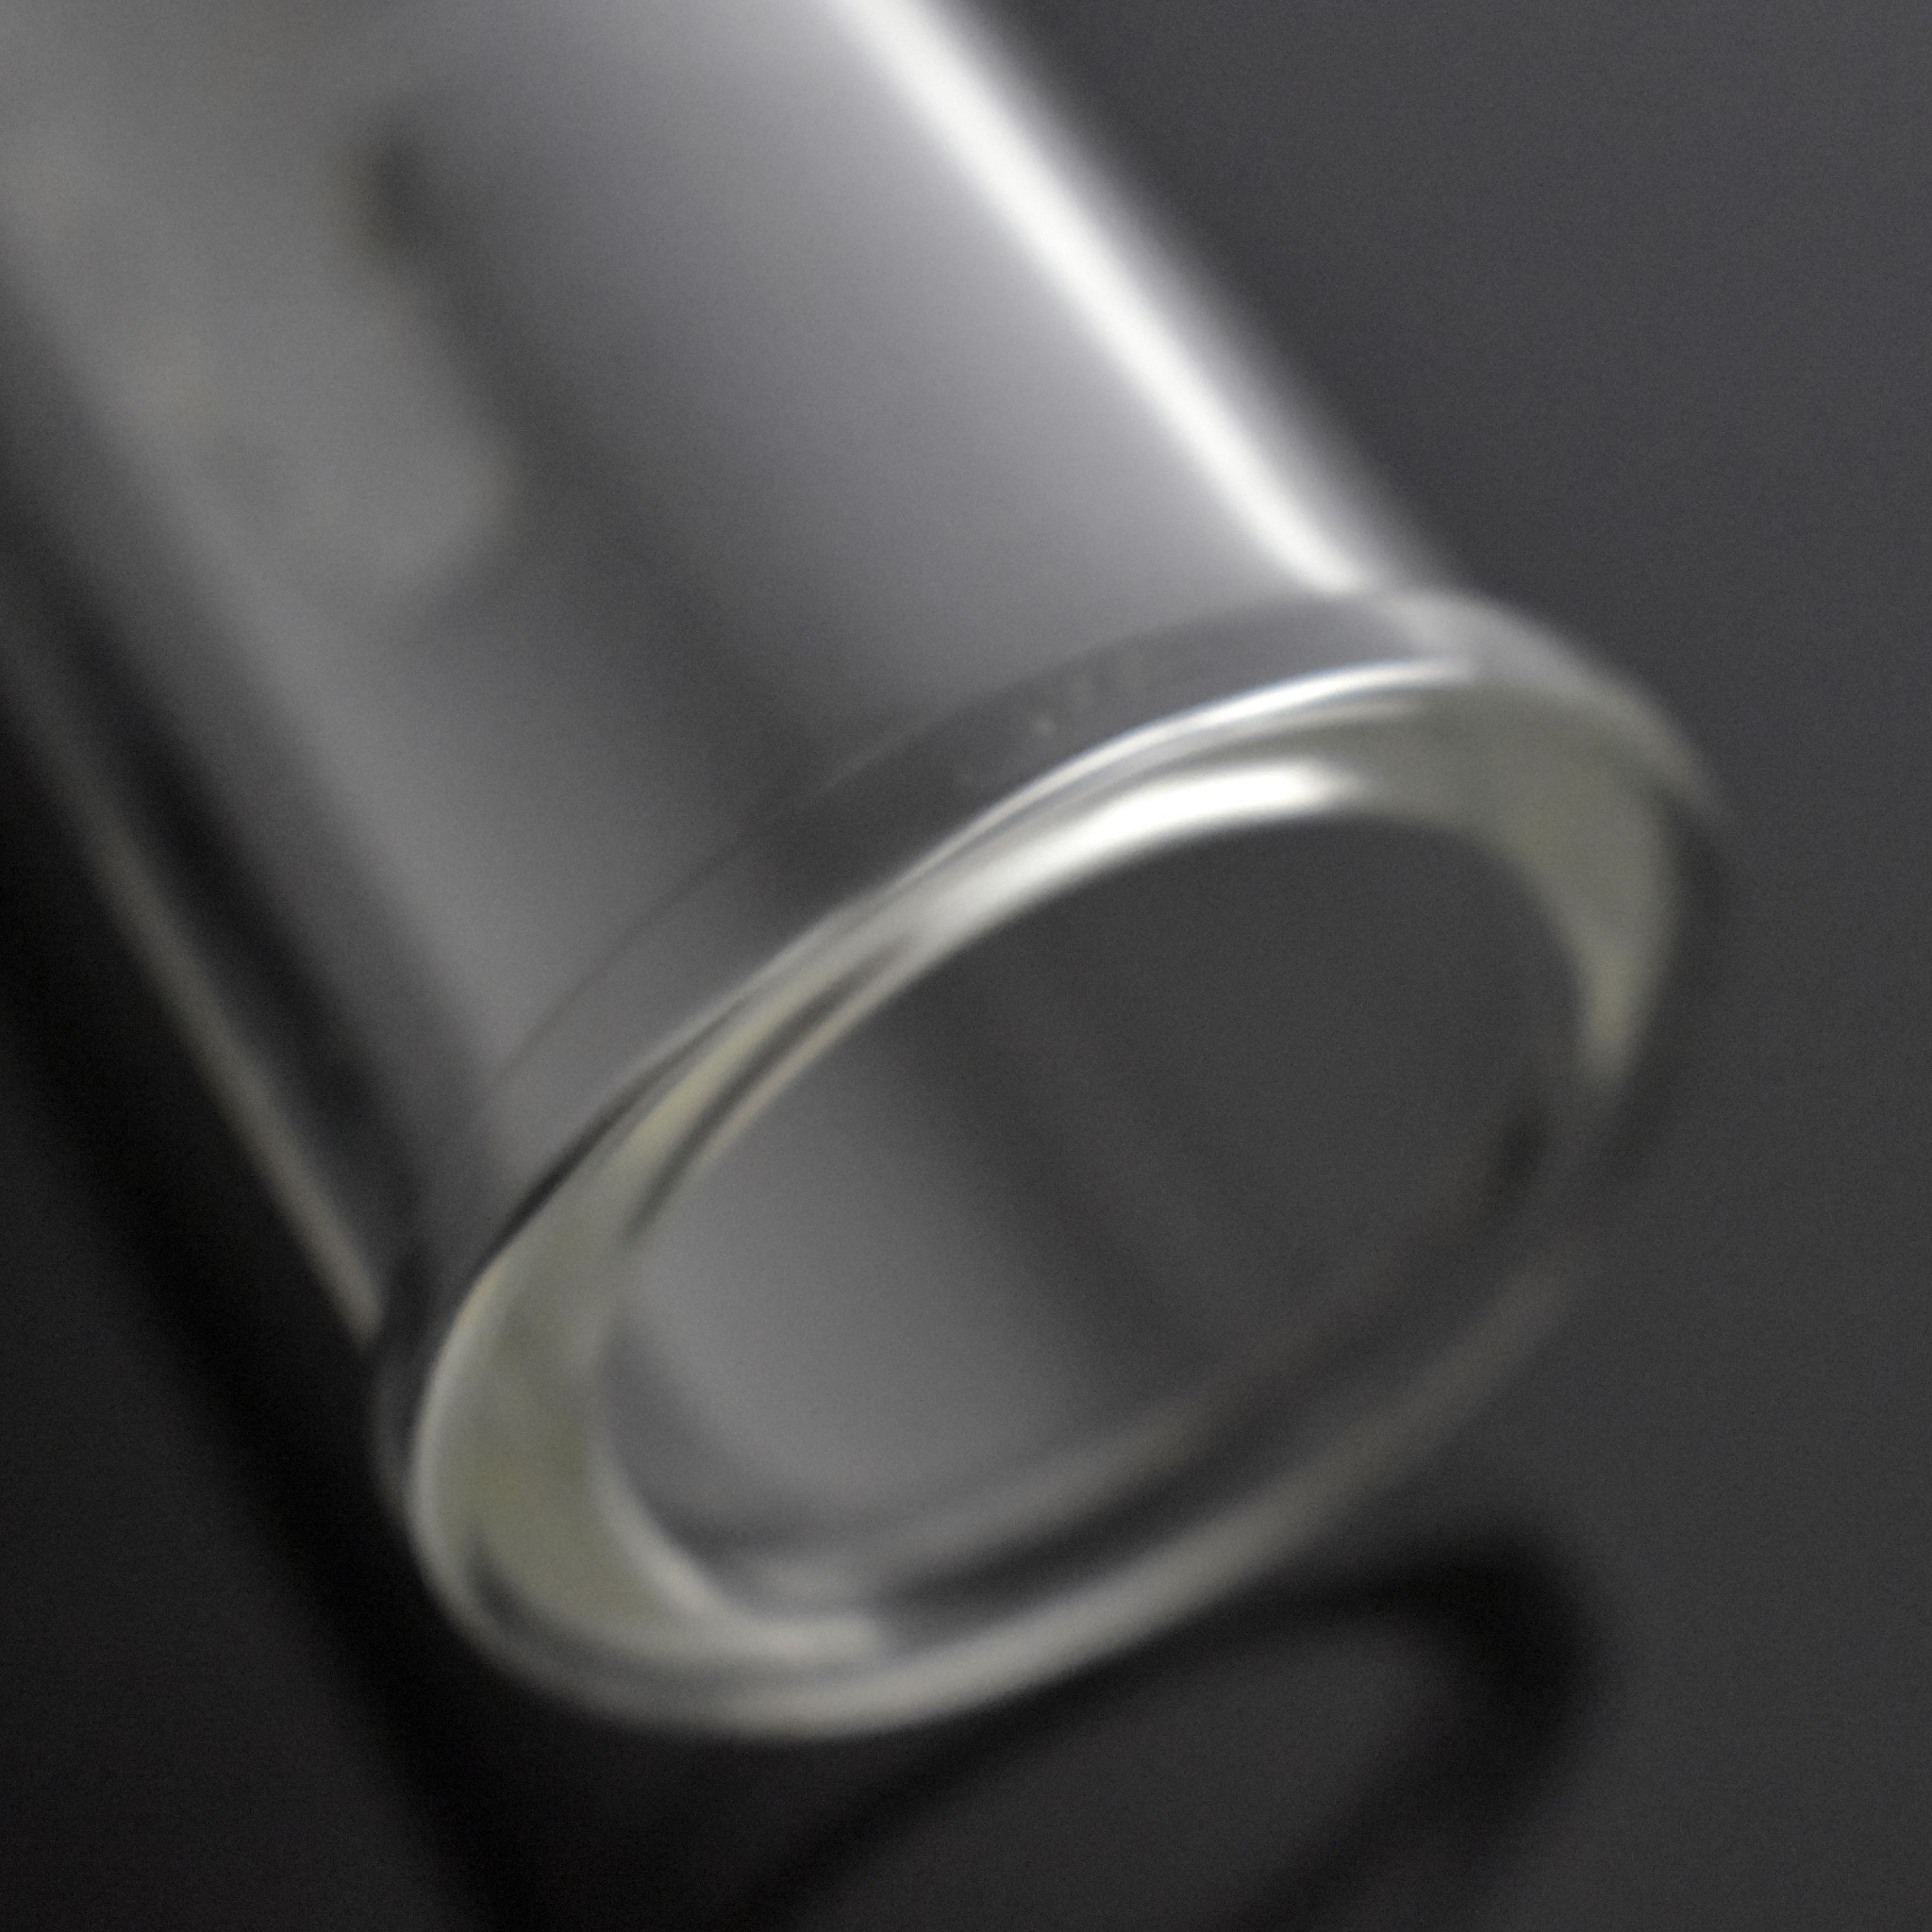 Glass Extractor Extraction Filter Tube 12 Long 50mm Diameter Clear with Stainless Steel Clamp